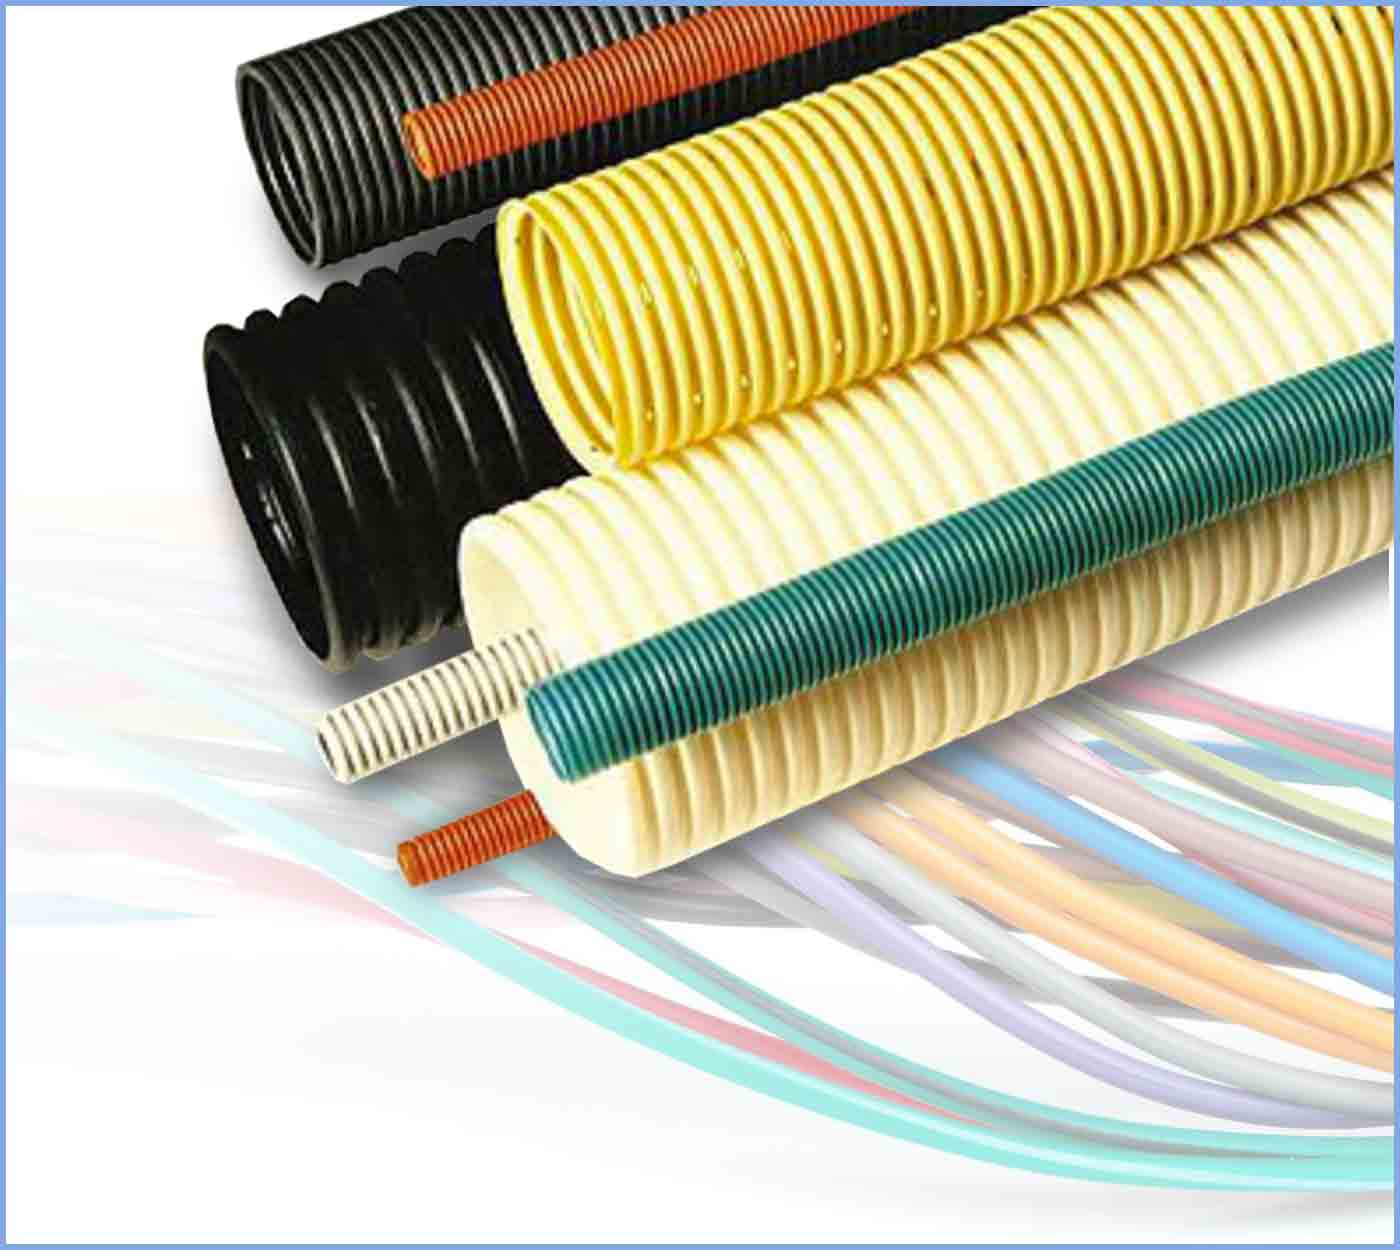 Corrugated Pipe for Electric Cable Systems